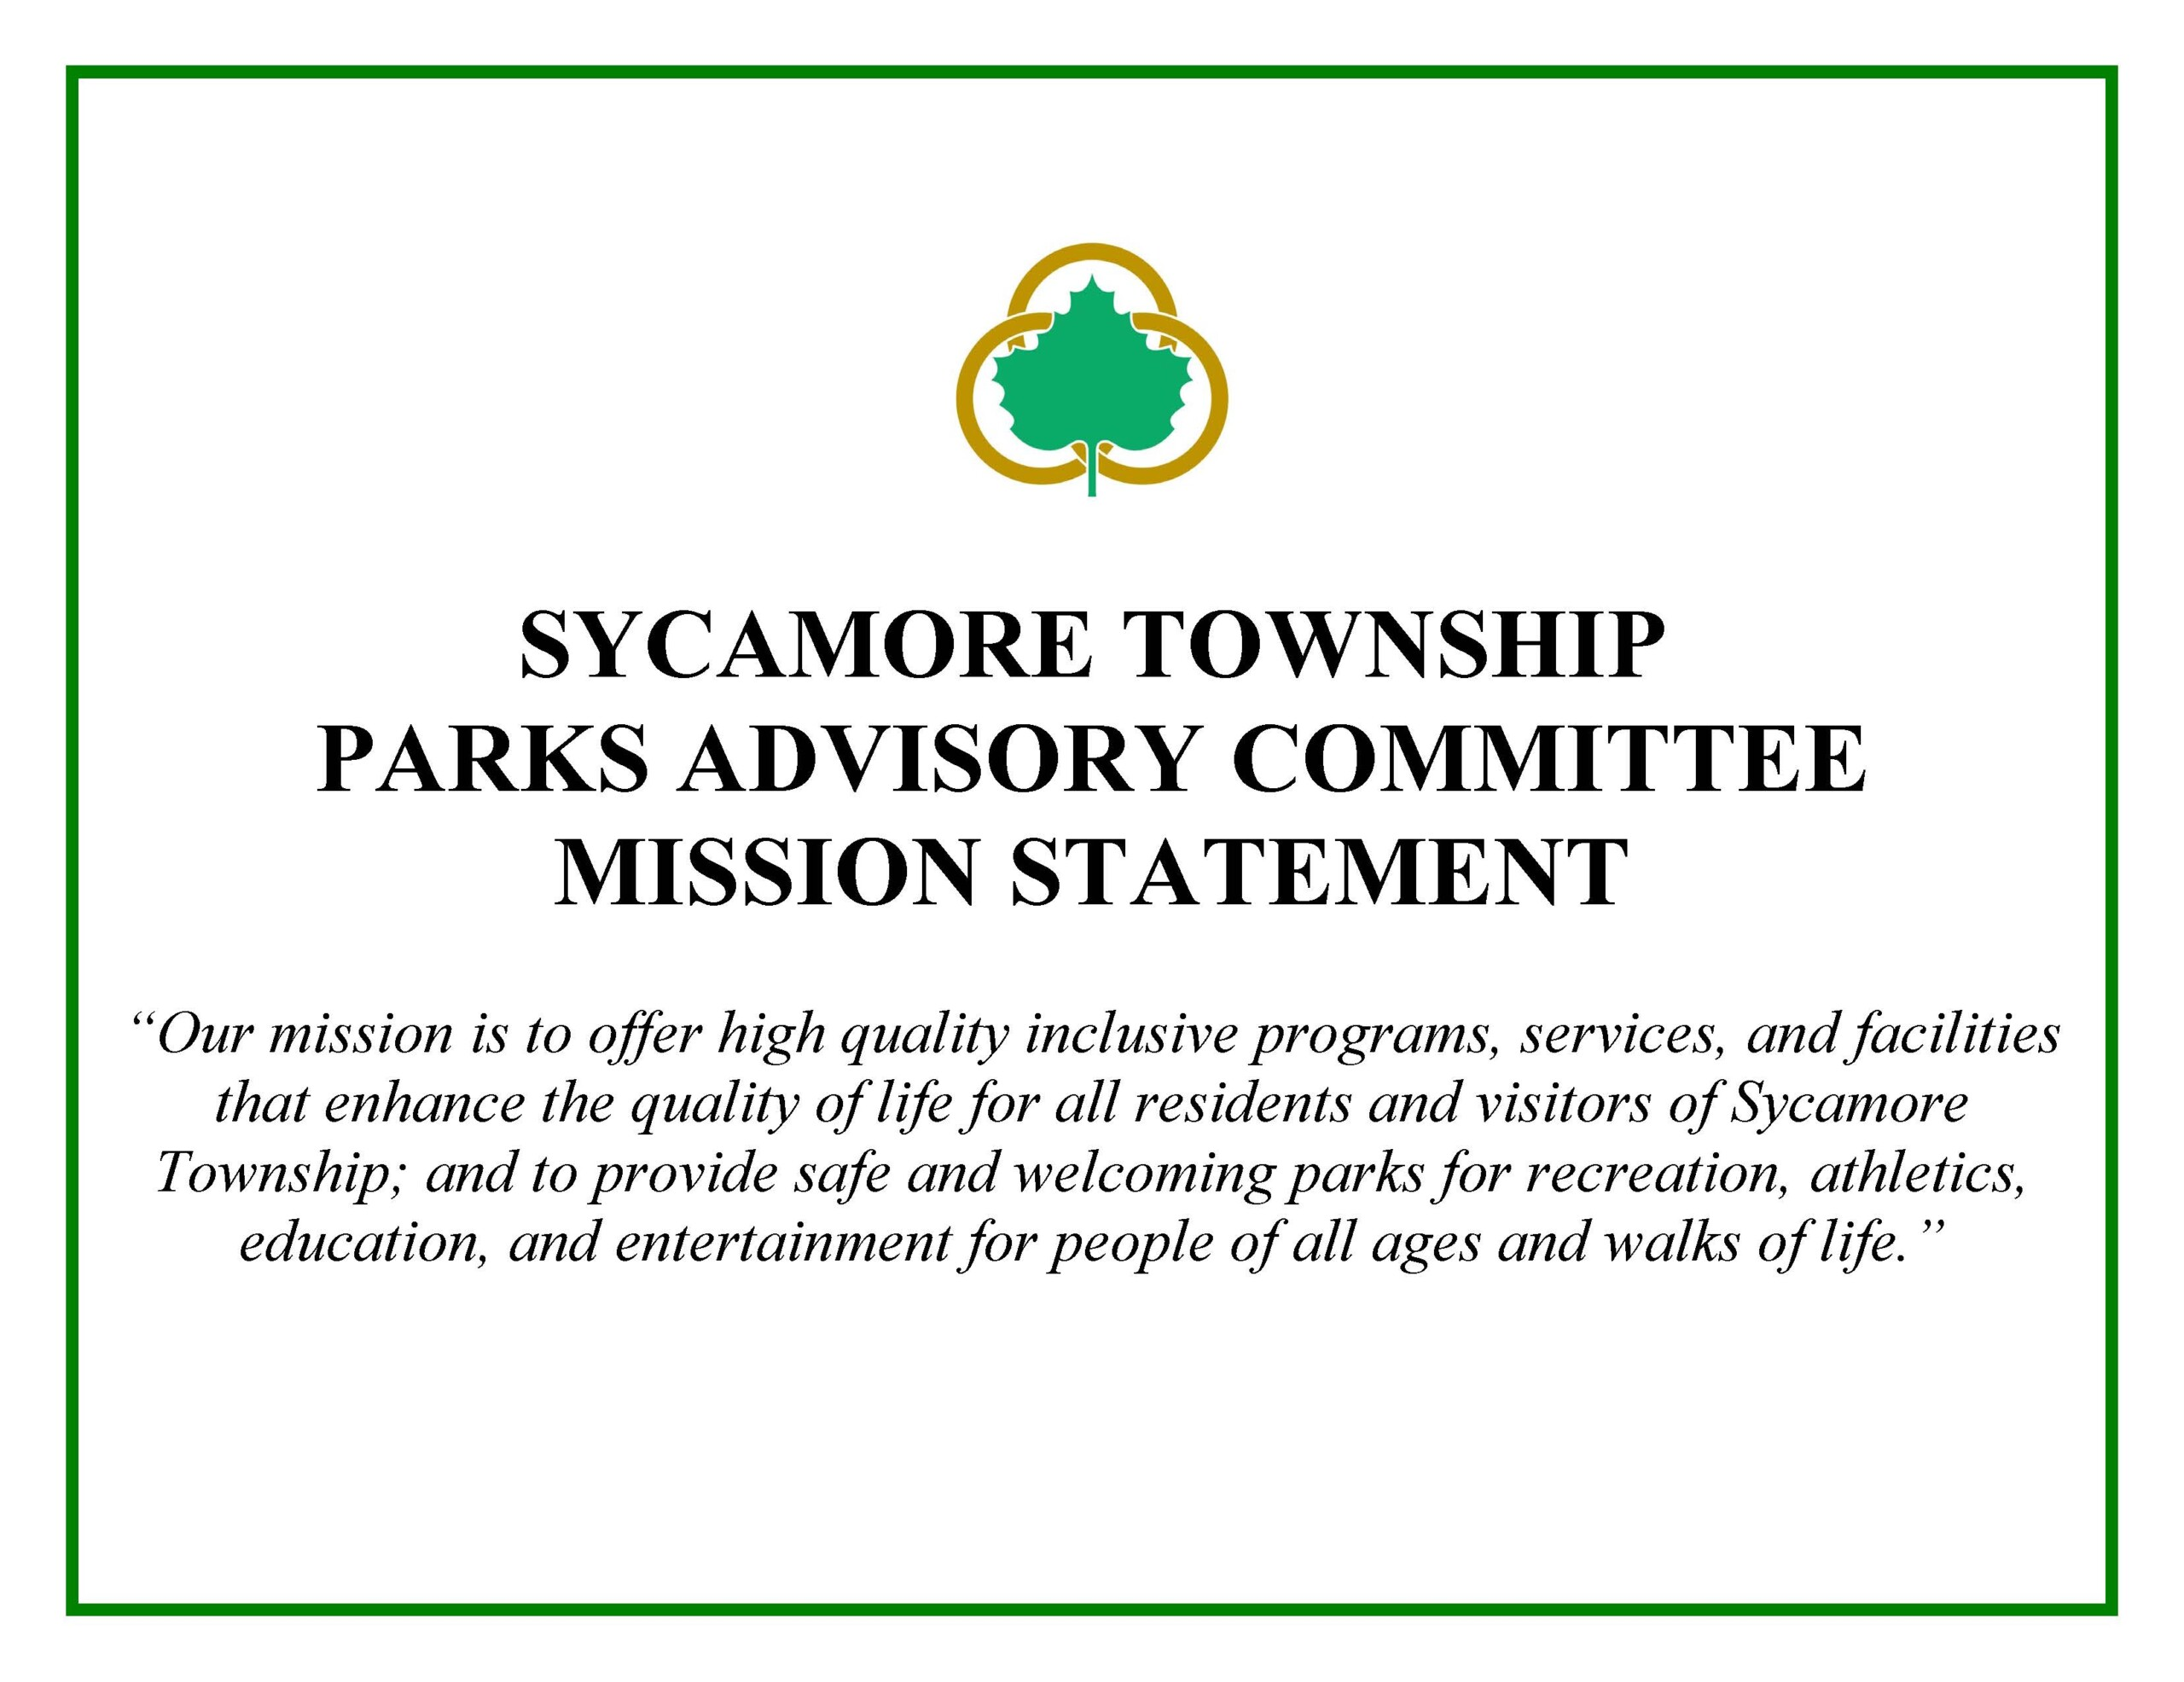 Parks Advisory Committee Mission Statement